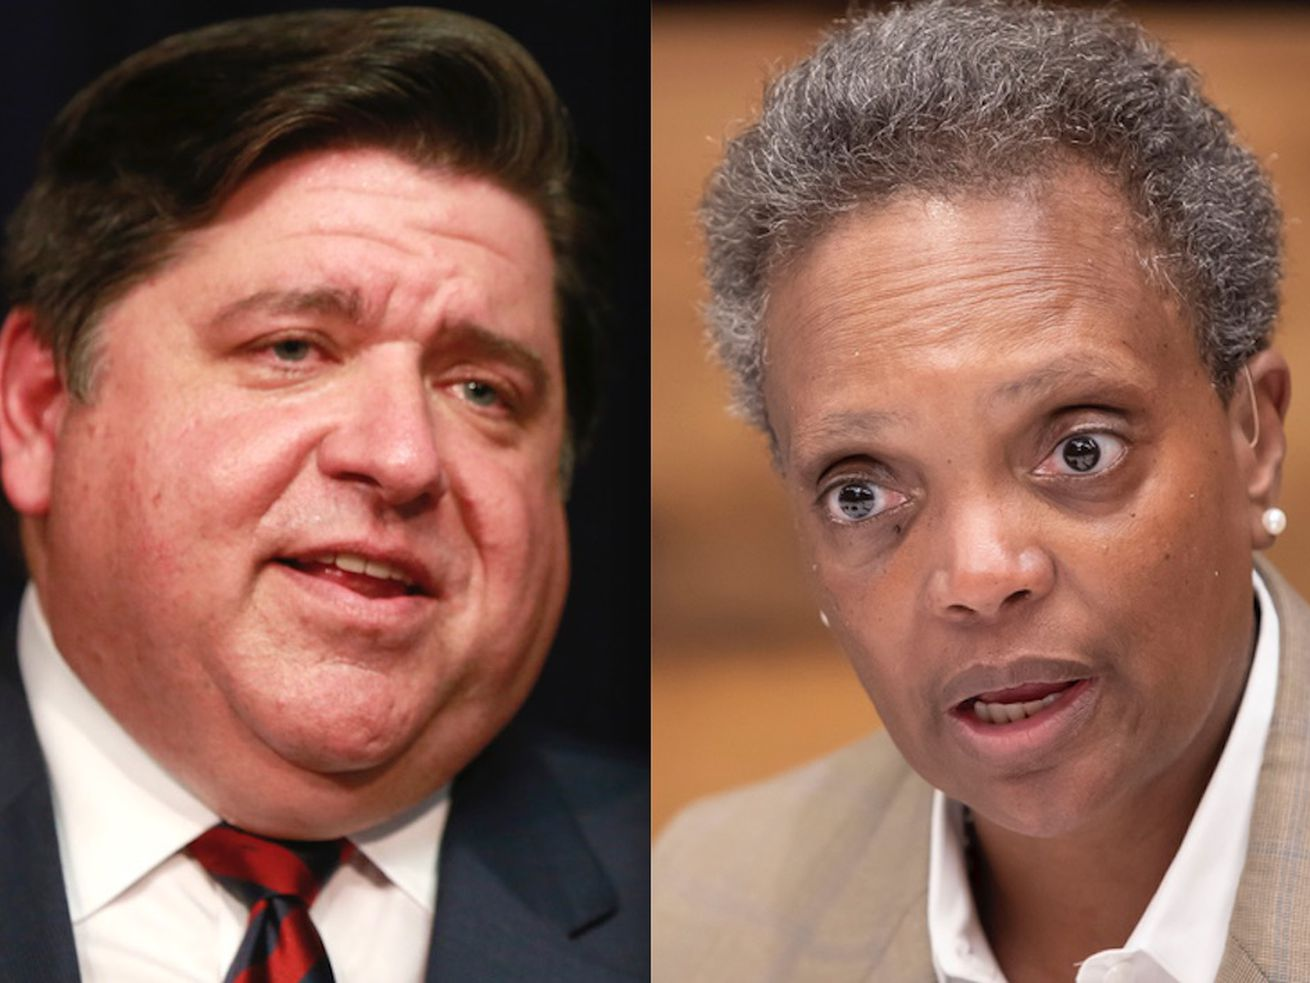 Gov. J.B. Pritzker, left, in 2019; Mayor Lori Lightfoot, right, in 2019.